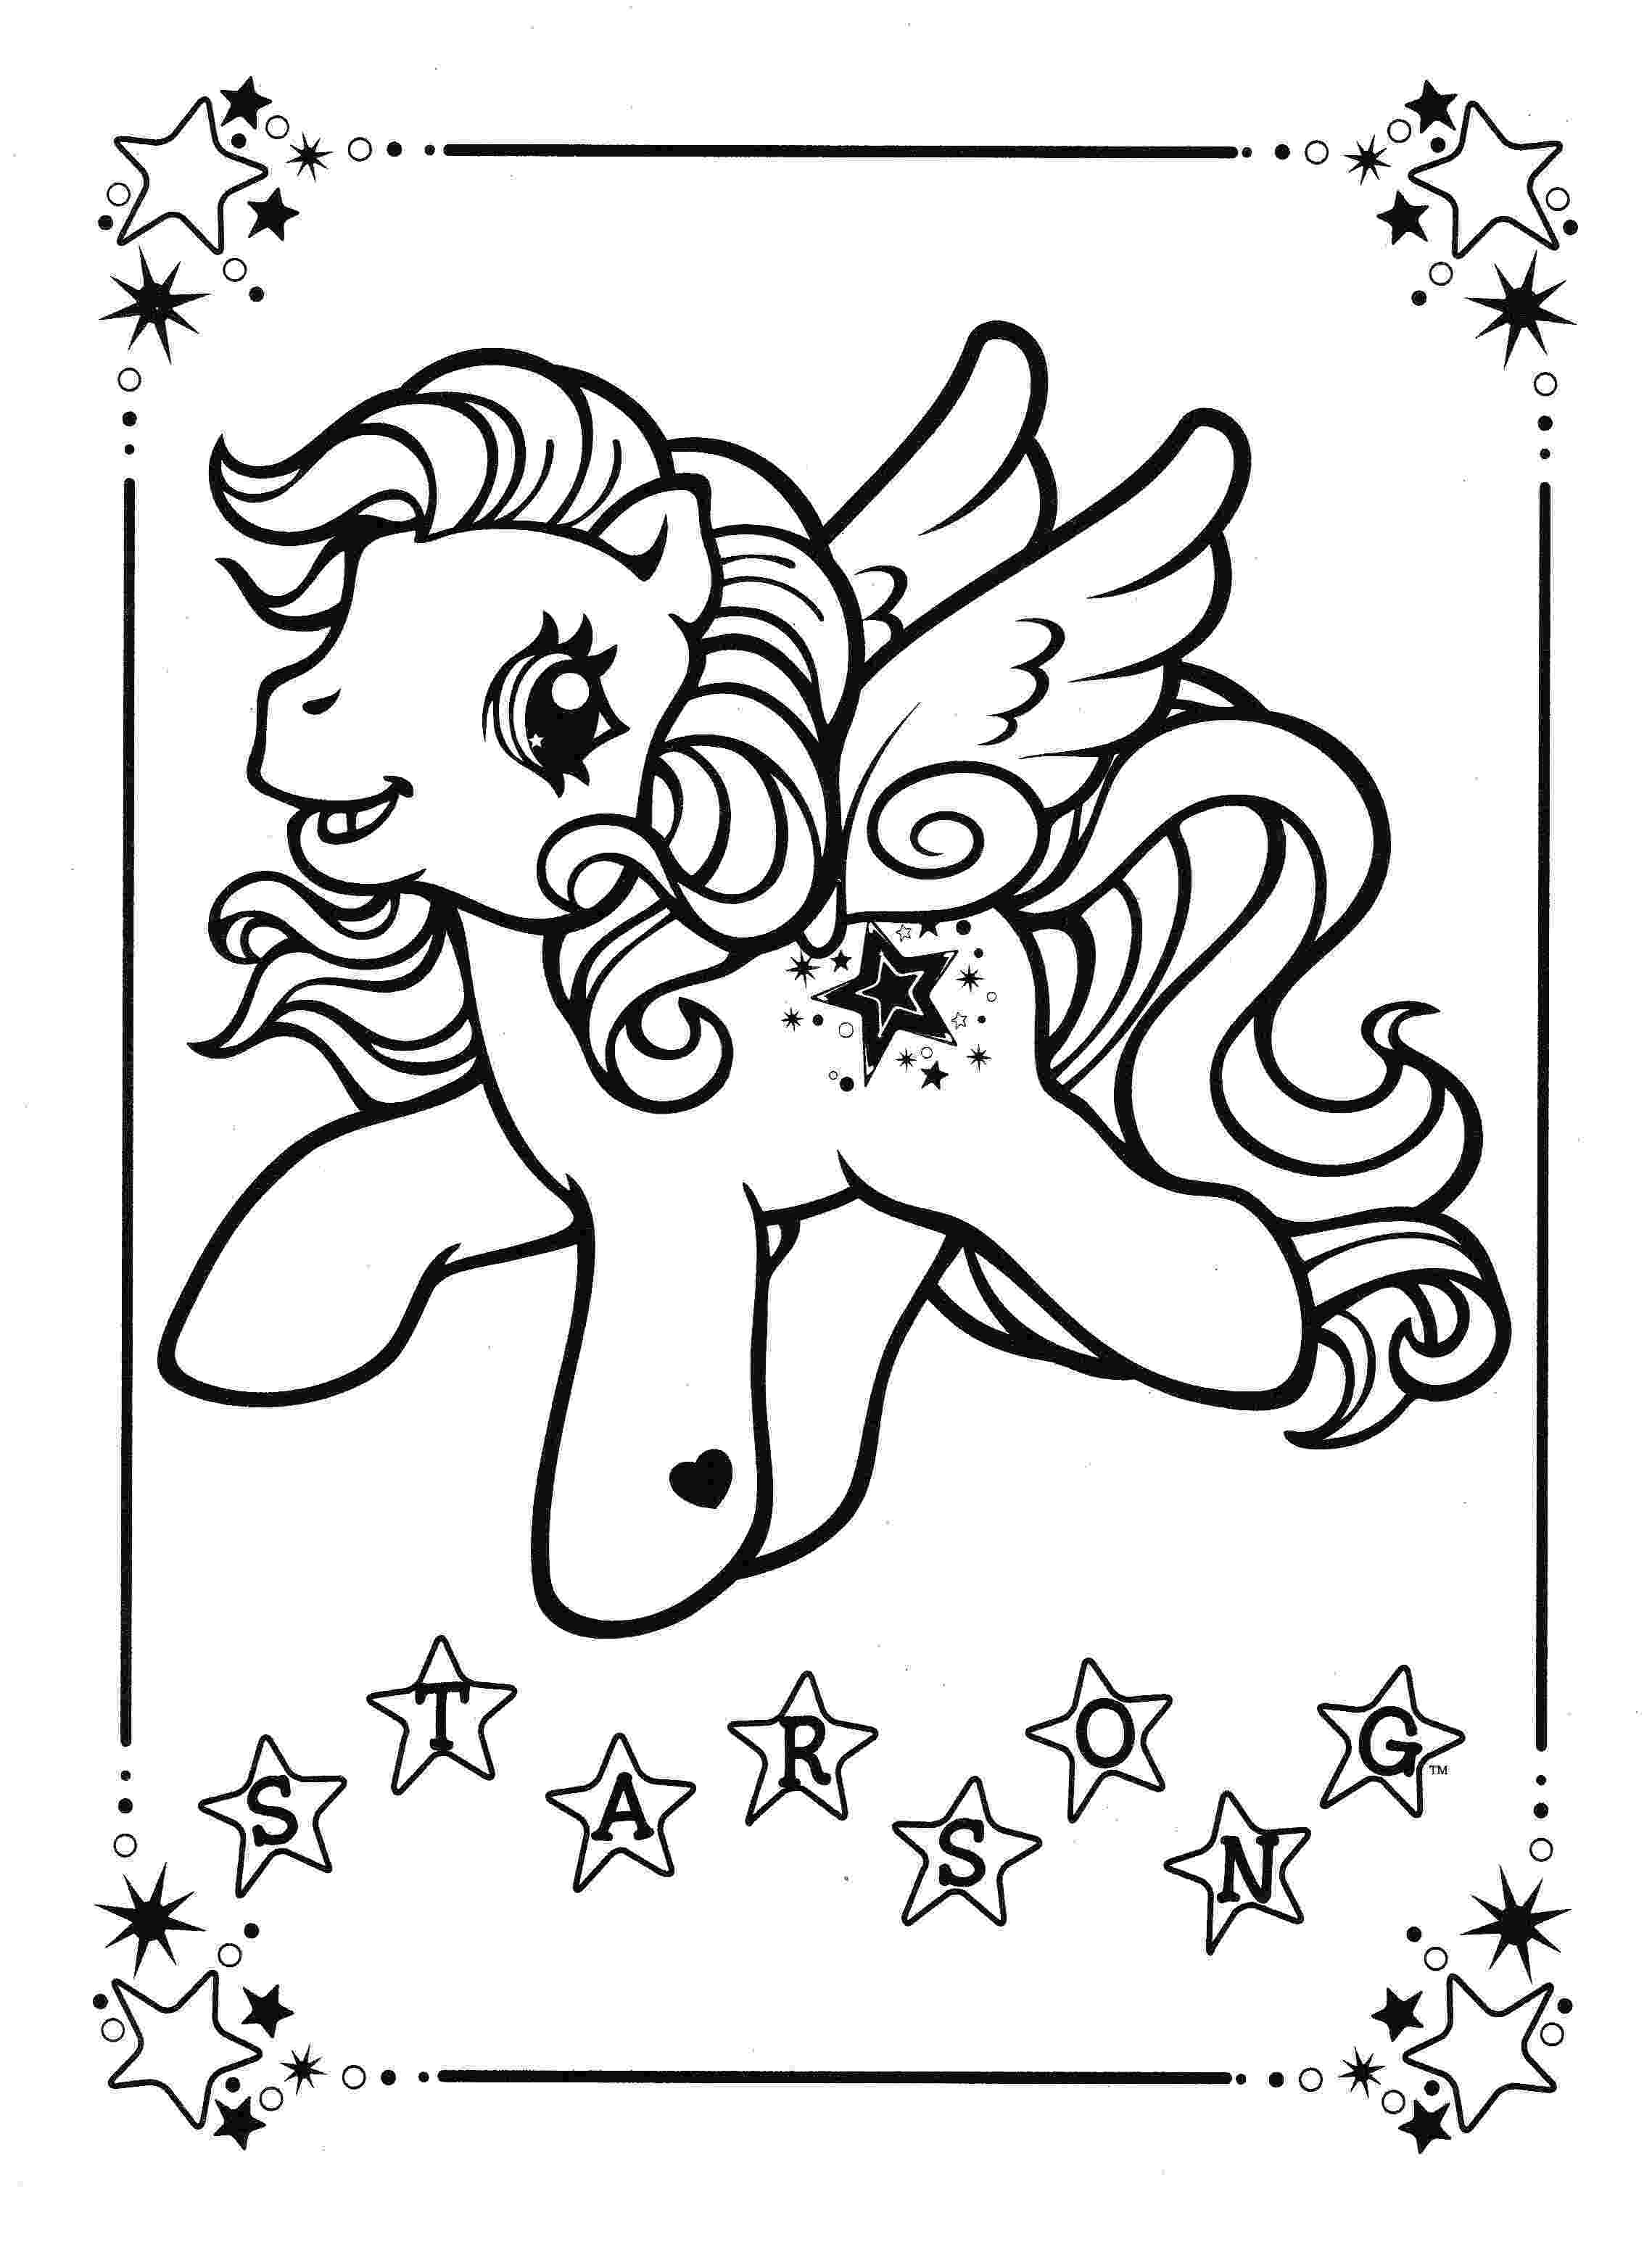 colour by number goldilocks three bears coloring pages at getcoloringscom free colour by goldilocks number